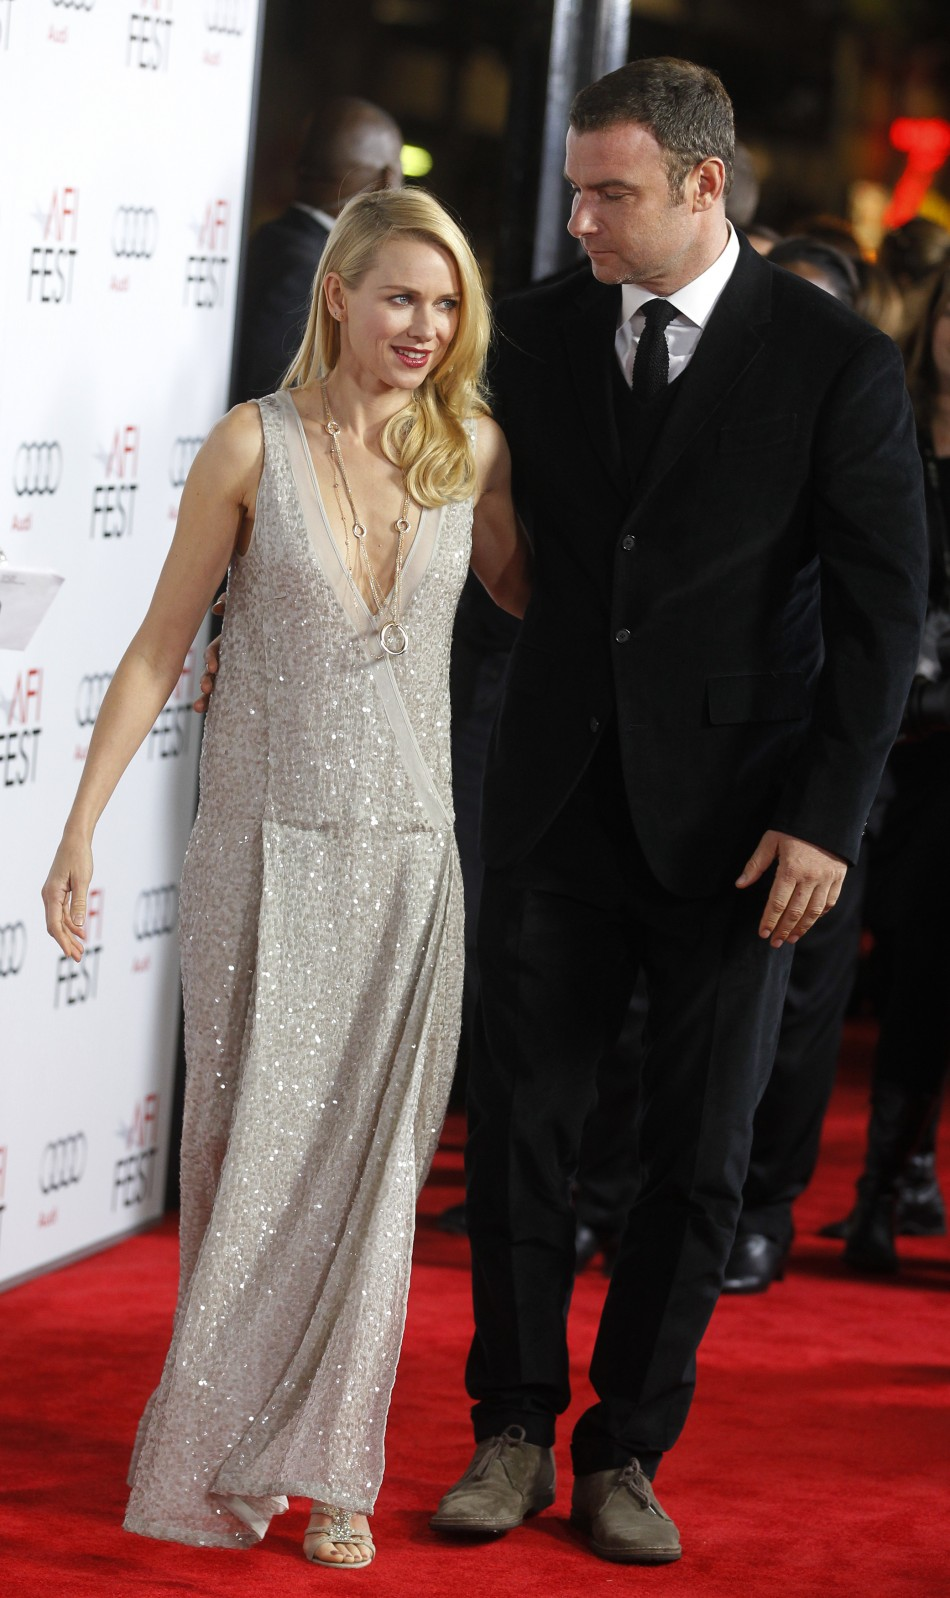 Actress Naomi Watts poses with boyfriend actor Liev Schreiber at the opening night gala for AFI Fest 2011 with the premiere of her new film film